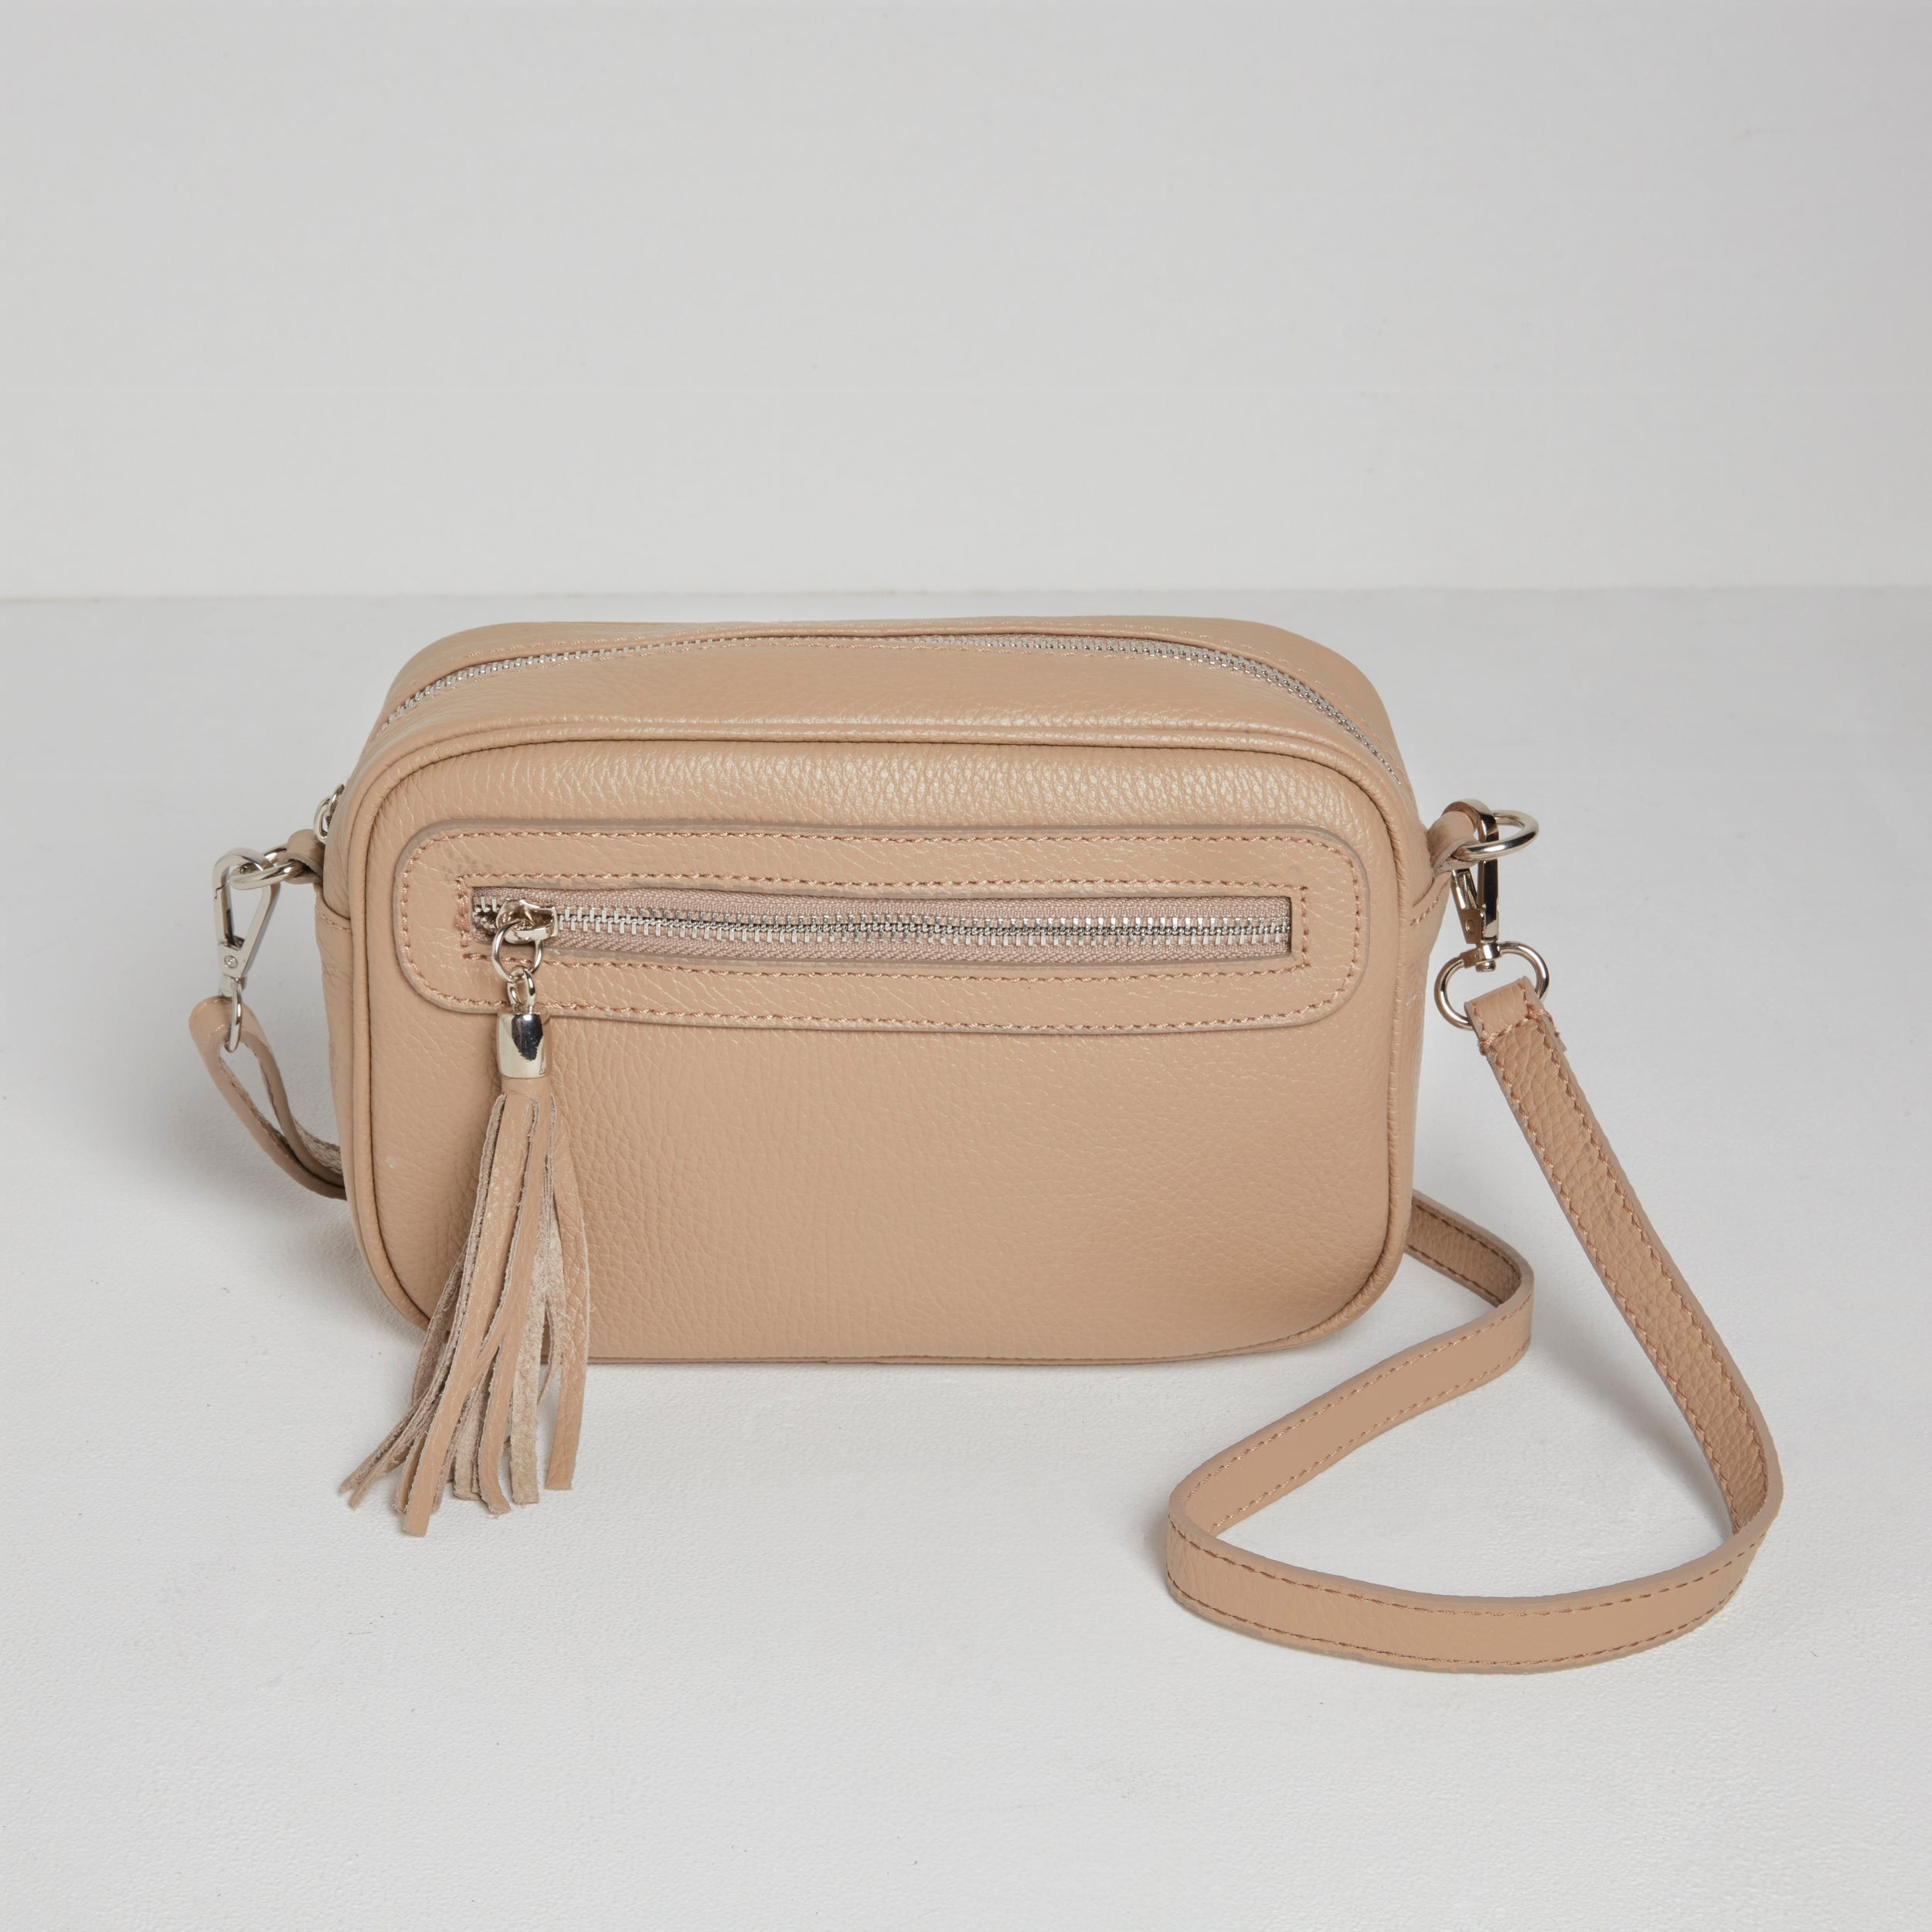 Florence - Crossbody Bag in Beige with Black White Strap